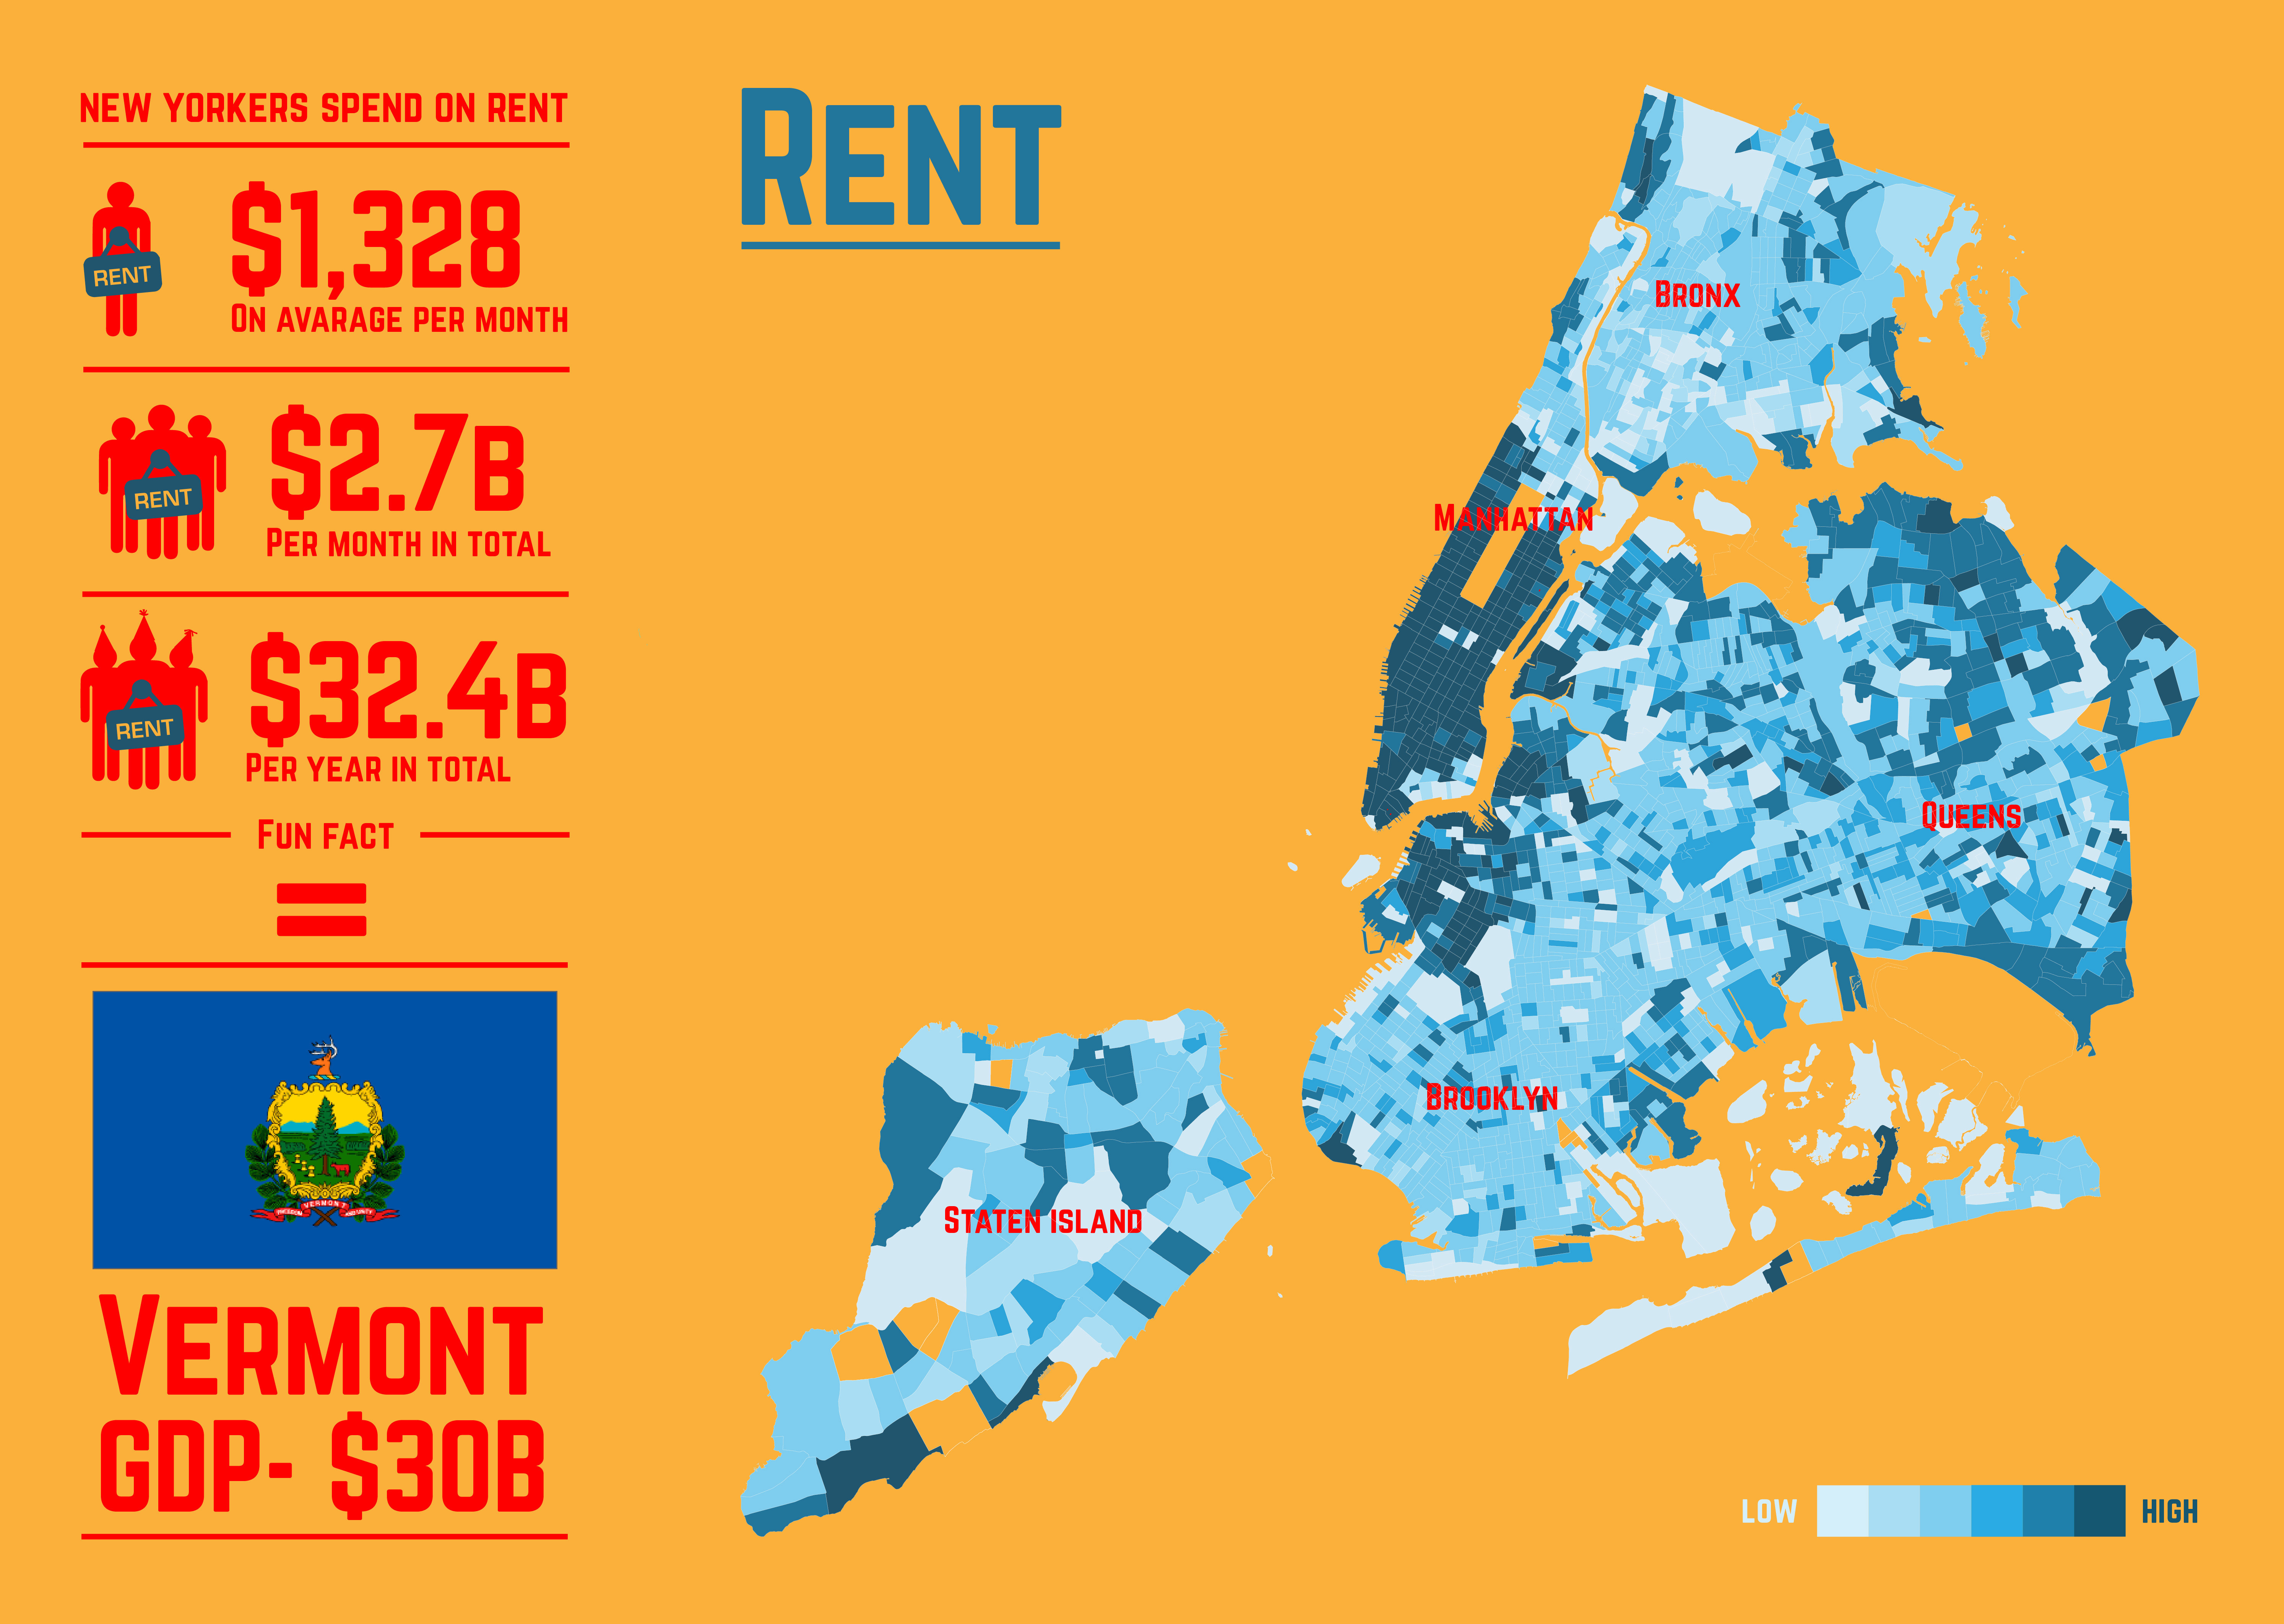 Maps Thatll Change How You See New York City HuffPost - Nyc map